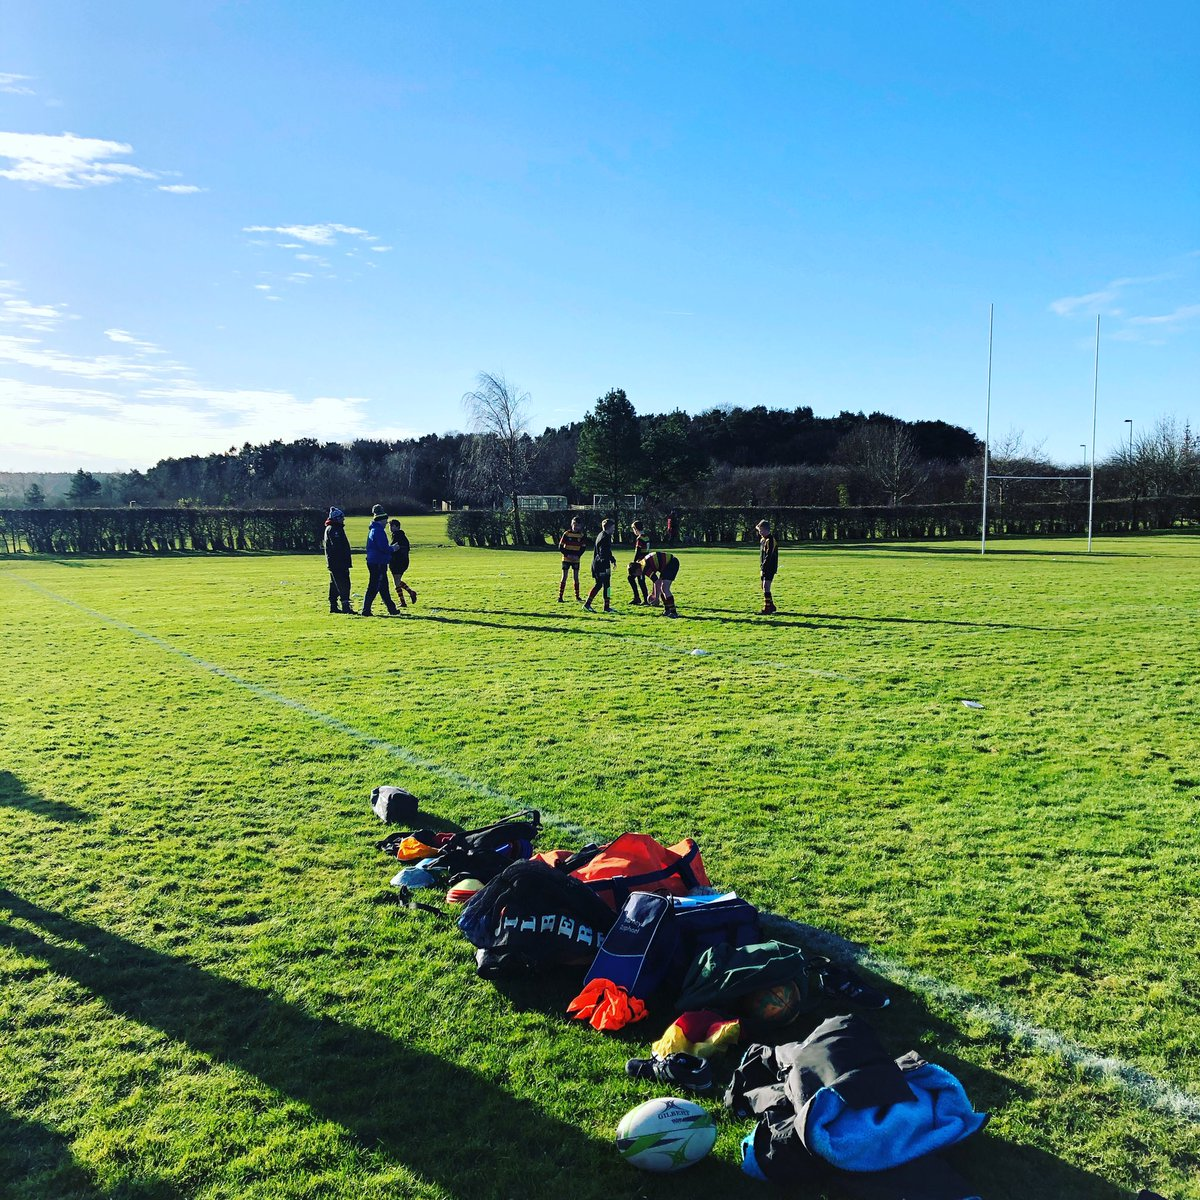 Sunday's = family time and standing in the cold on a beautiful sunny day supporting your kids. Under 13's @harrogate_rfc  . . #harrogate #harrogaterufc #sundaysareforfamily #familytime #sundayfunday #rugby #rugbylife #wintersun #harrogatefisheries #harrogatefishandchipspic.twitter.com/GDegyE3YBu